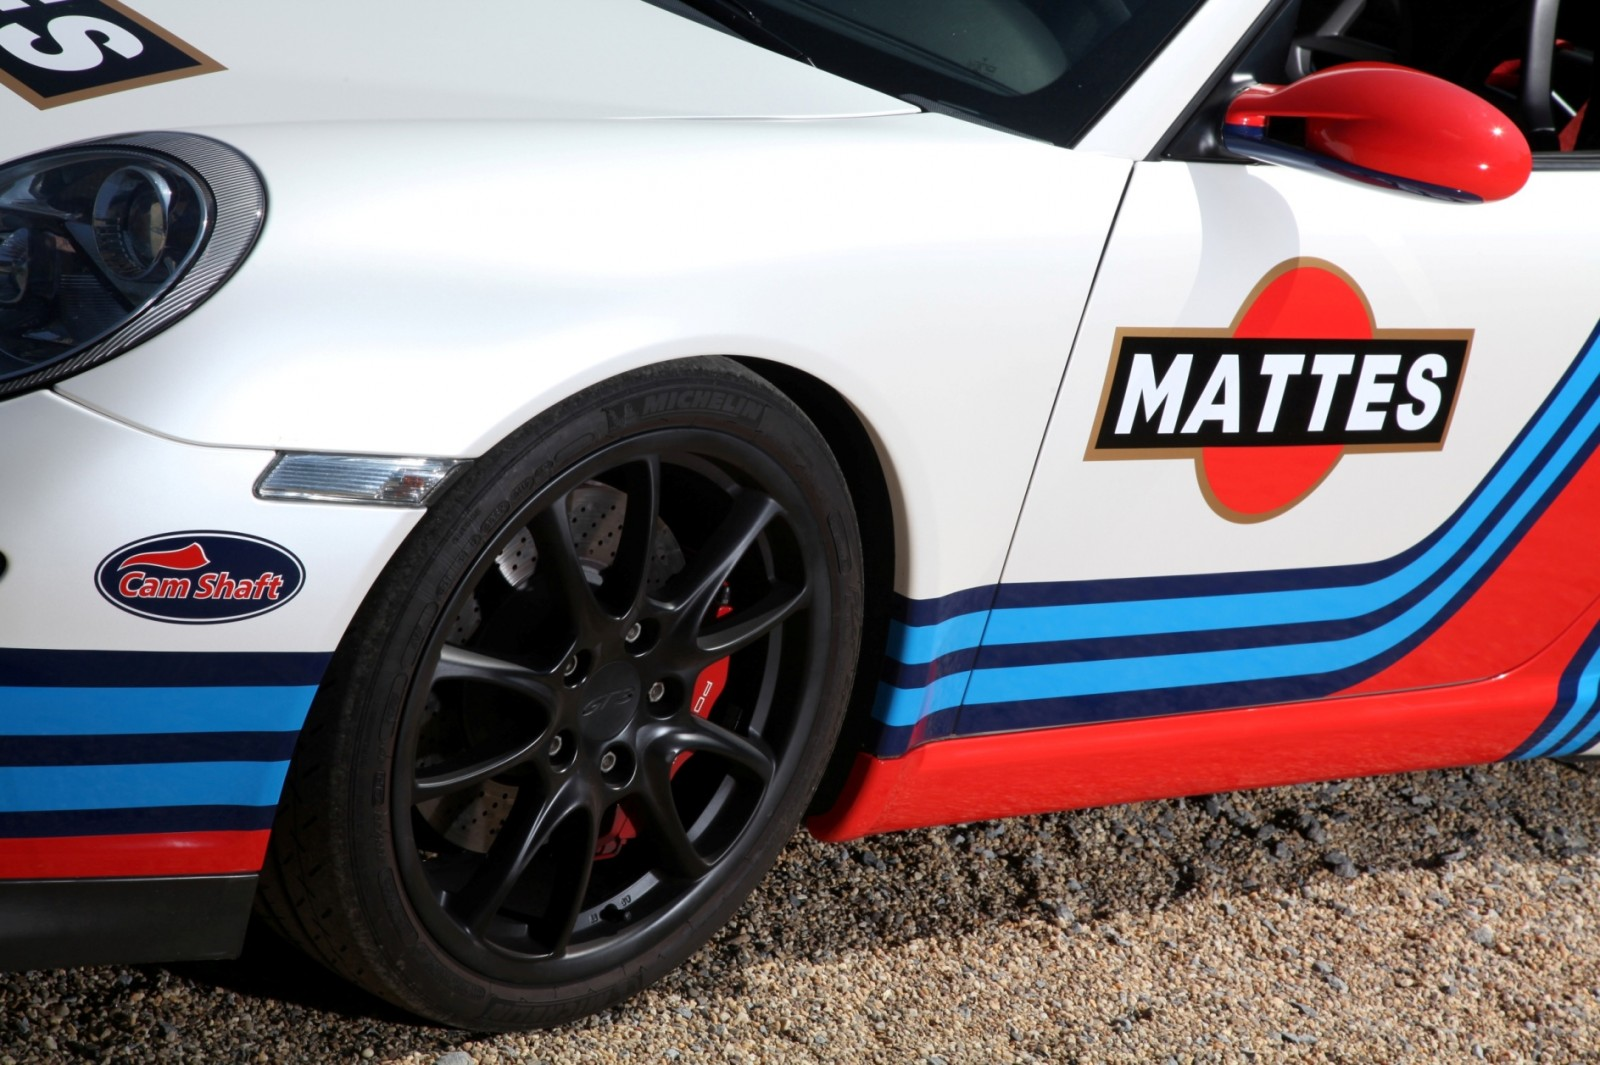 Martini-style Racing Livery by CAM SHAFT for the Porsche 911 GT3 3